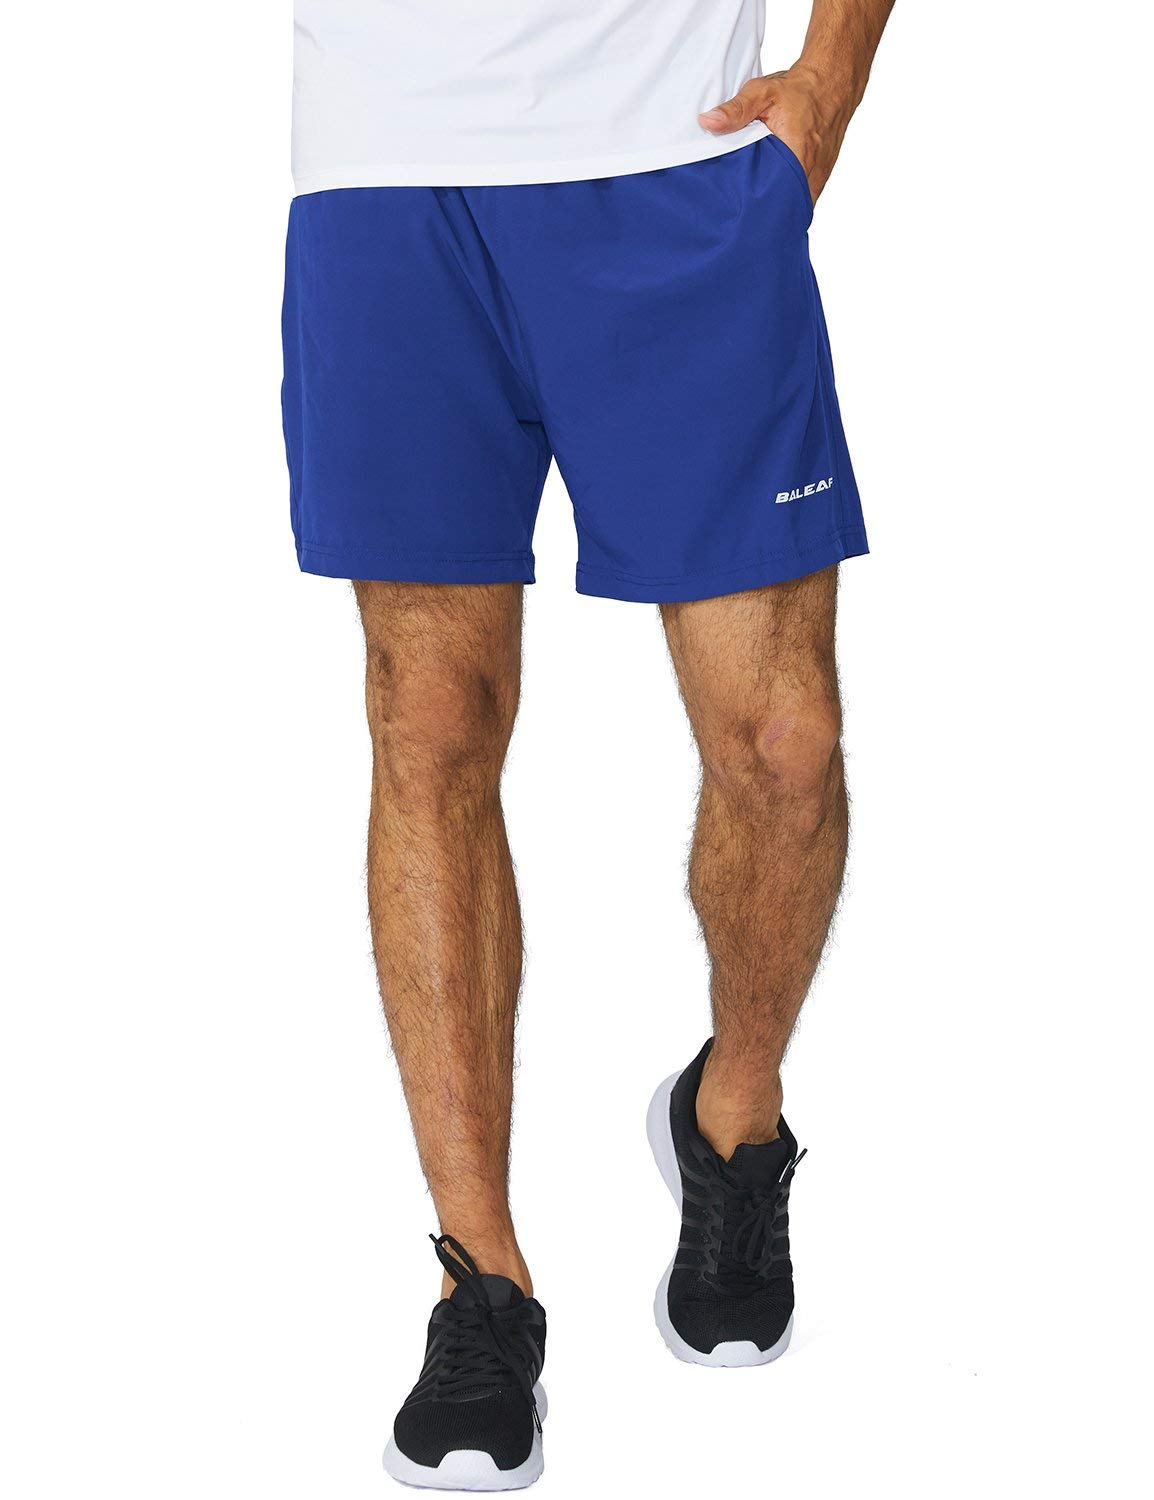 Baleaf Men's Woven 5 Inches Running Workout Shorts Zipper Pocket Royal Blue Size XXL by Baleaf